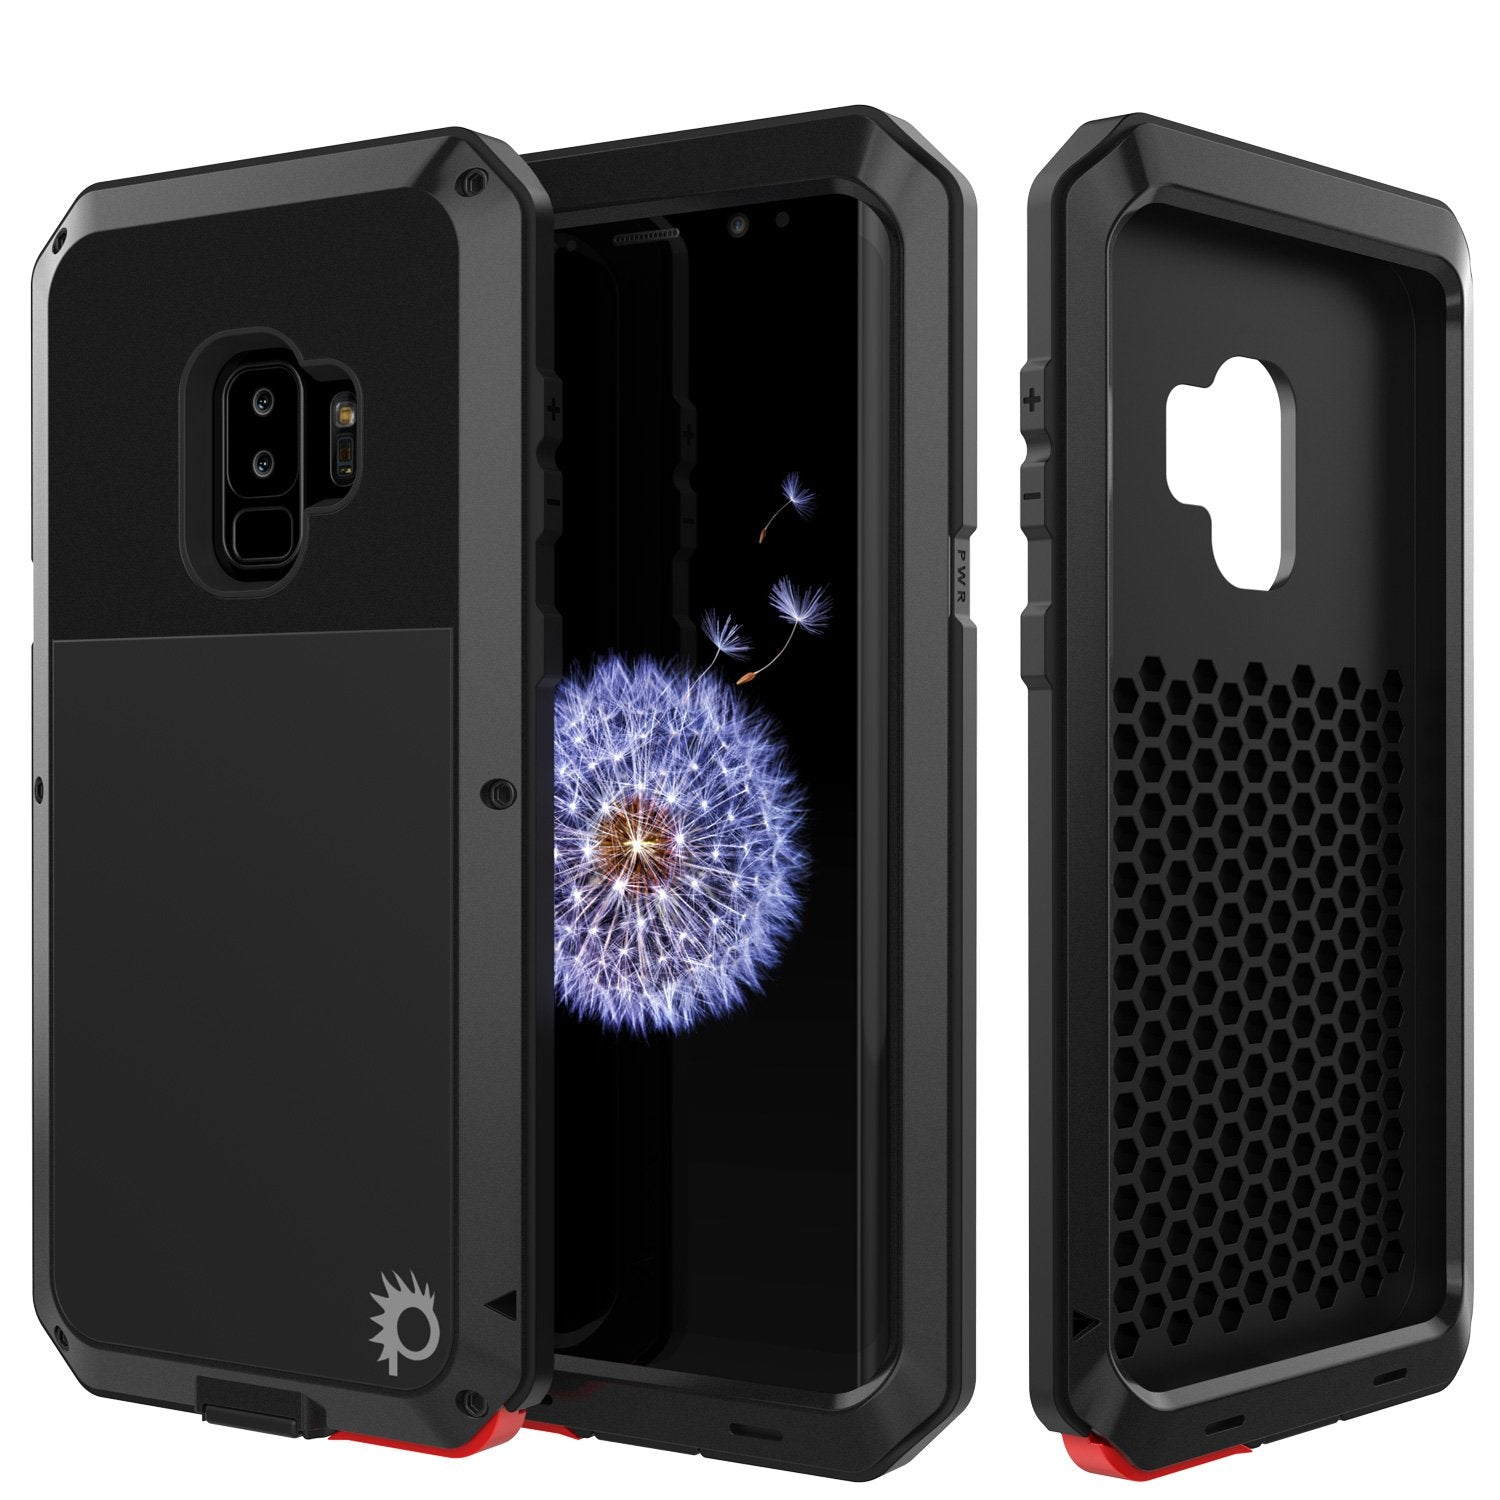 Galaxy S9 Plus Metal Case, Heavy Duty Military Grade Rugged Case,Black